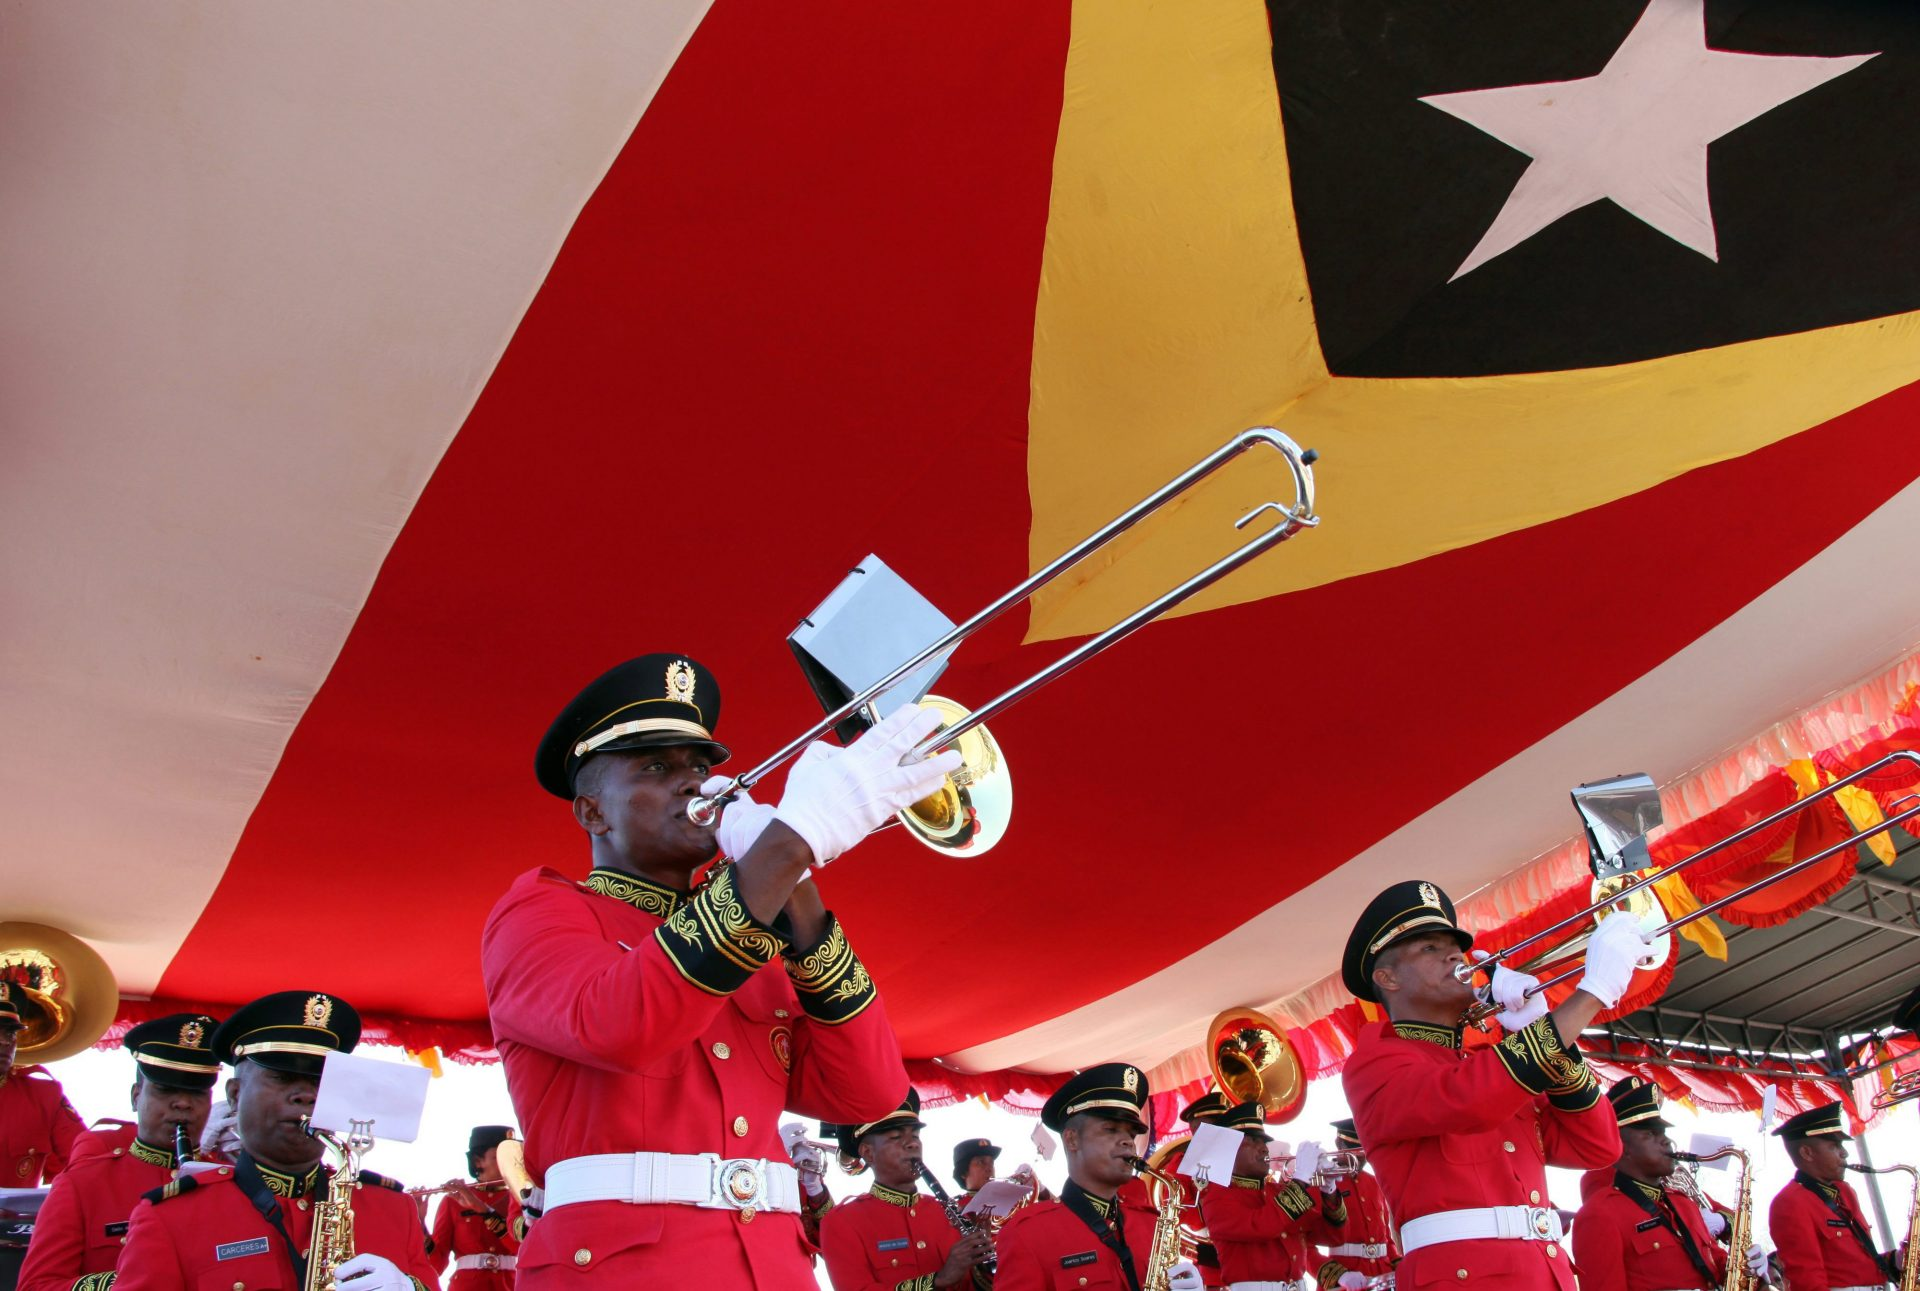 epa05045261 An East Timorese military brass band marches under a giant national flag during a parade to mark the restoration of their independence, in Dili, East Timor, also known as Timor Leste, 28 November 2015. East Timor was colonized by Portugal in the 16th century, until Portugal's decolonization of the country. In late 1975 East Timor declared its independence but was occupied by Indonesia that declared it as the country's 27th province the following year. In 1999, following the United Nations-sponsored act of self-determination, Indonesia relinquished control of the territory and East Timor became the first new sovereign state of the twenty-first century on 20 May 2002. EPA/ANTONIO DASIPARU